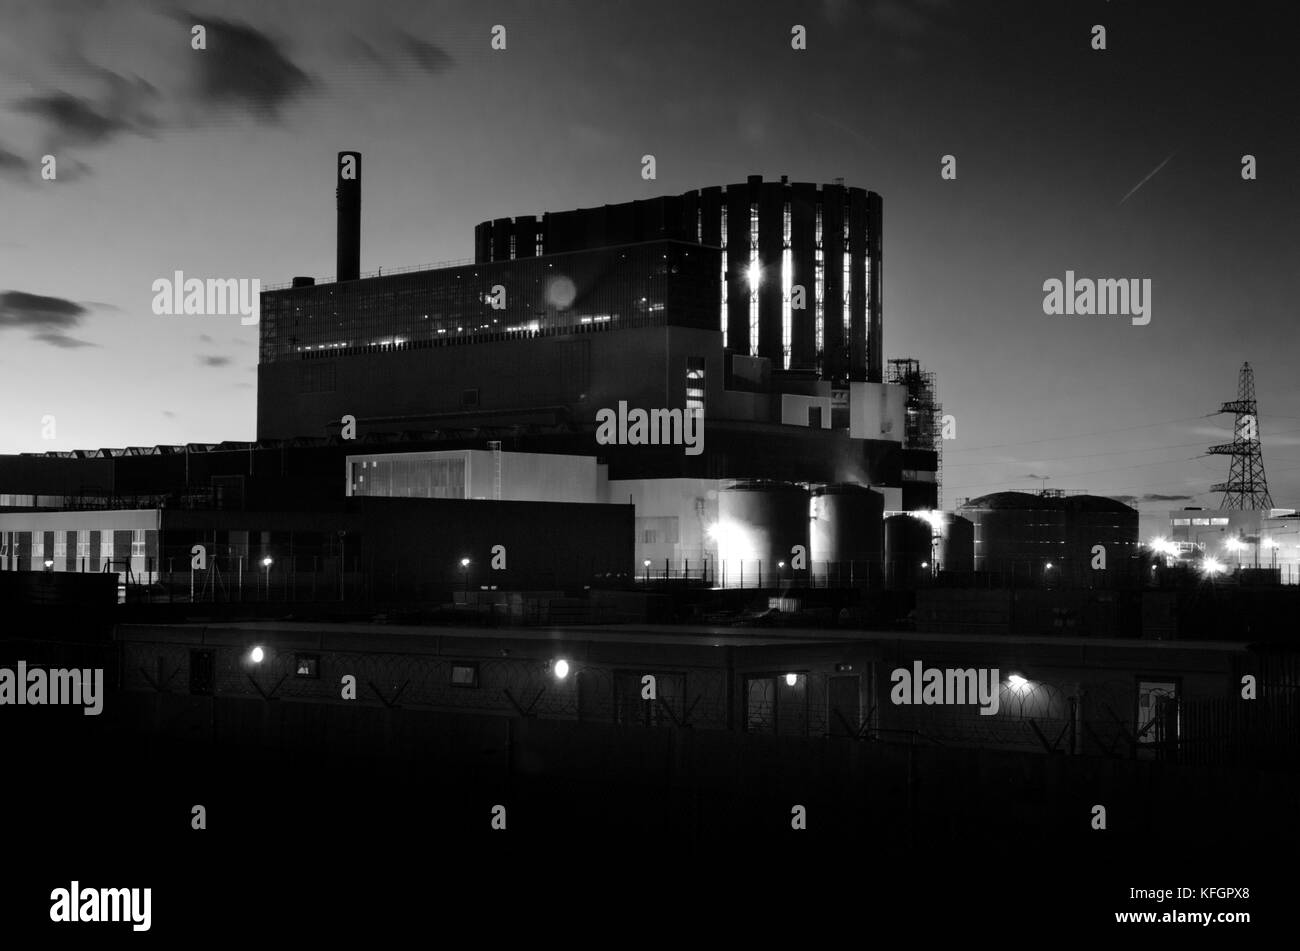 Dungeness nuclear power station at night. - Stock Image